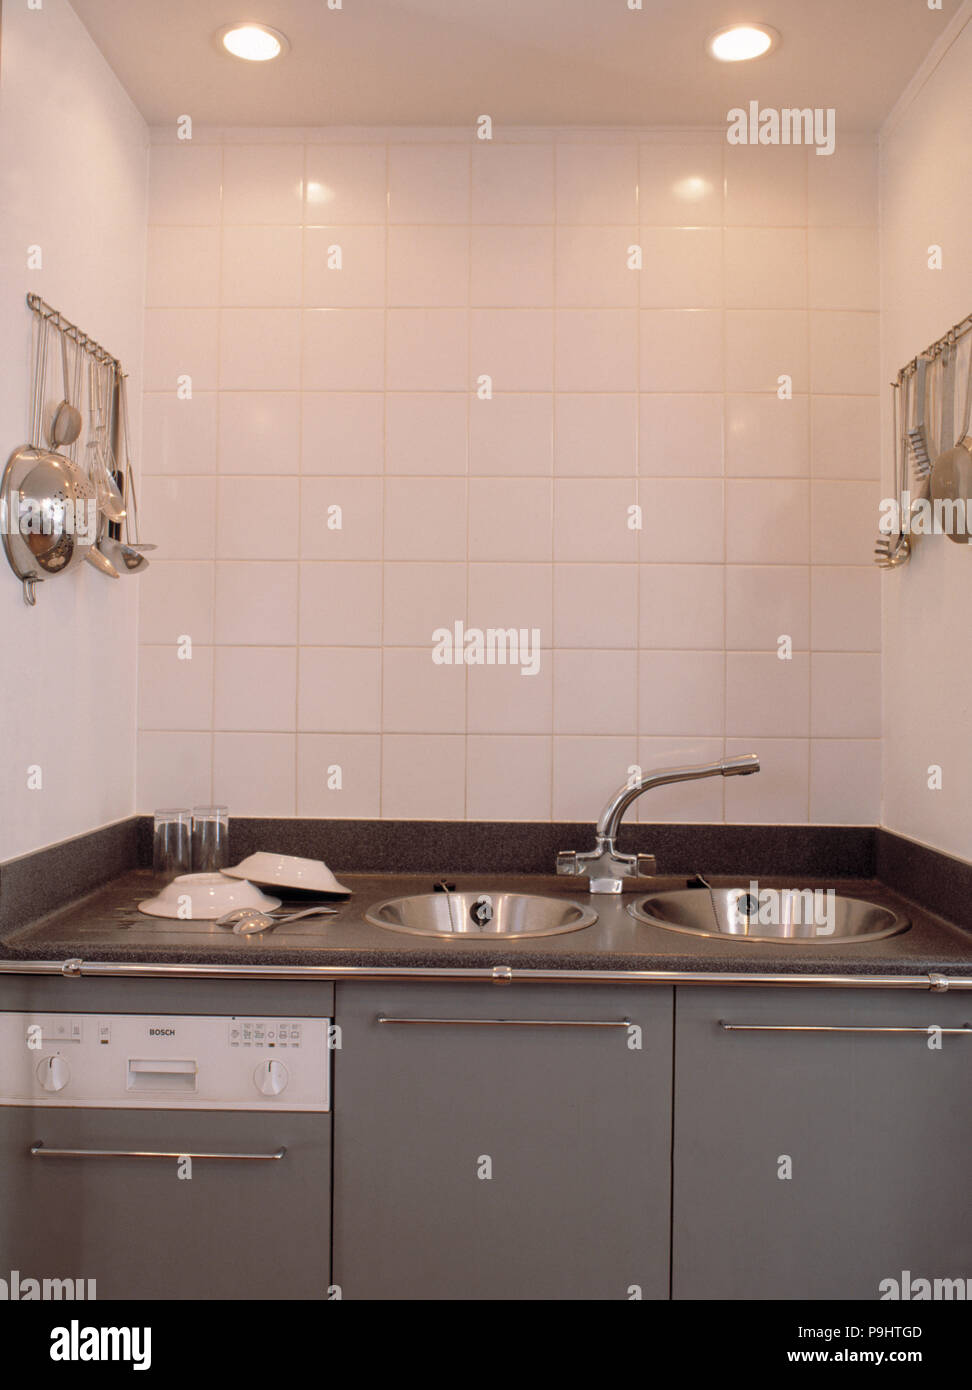 White Wall Tiles Above Double Circular Steel Sinks In Grey Kitchen Unit With Built In Dishwasher Stock Photo Alamy